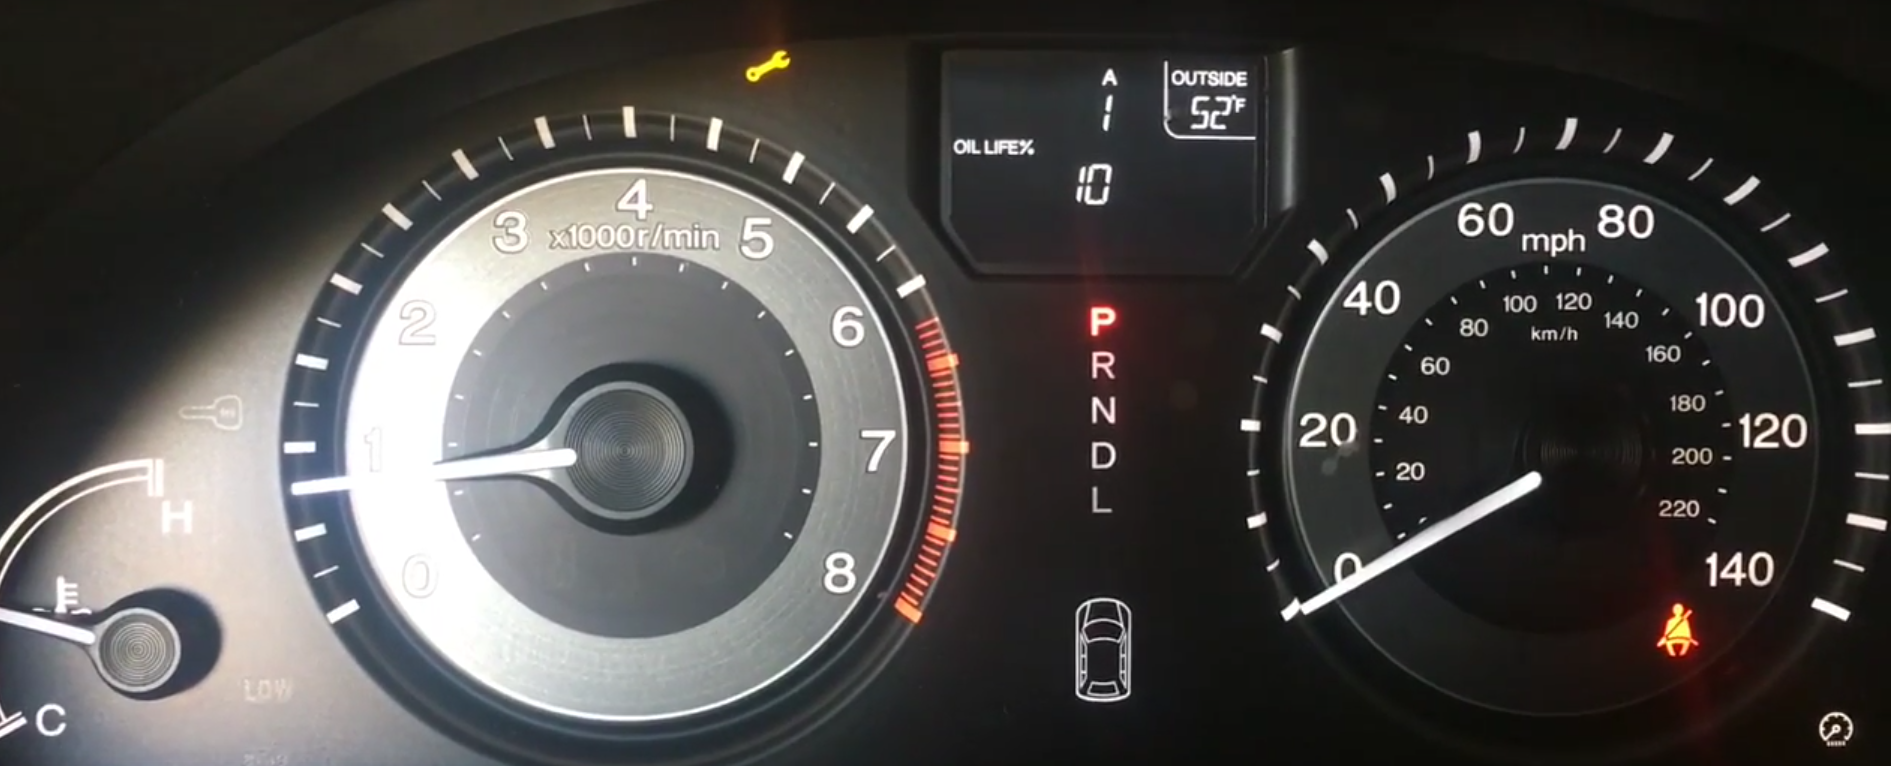 Awesome How To Reset The Oil Life Light On A 2011 2016 Honda Odyssey